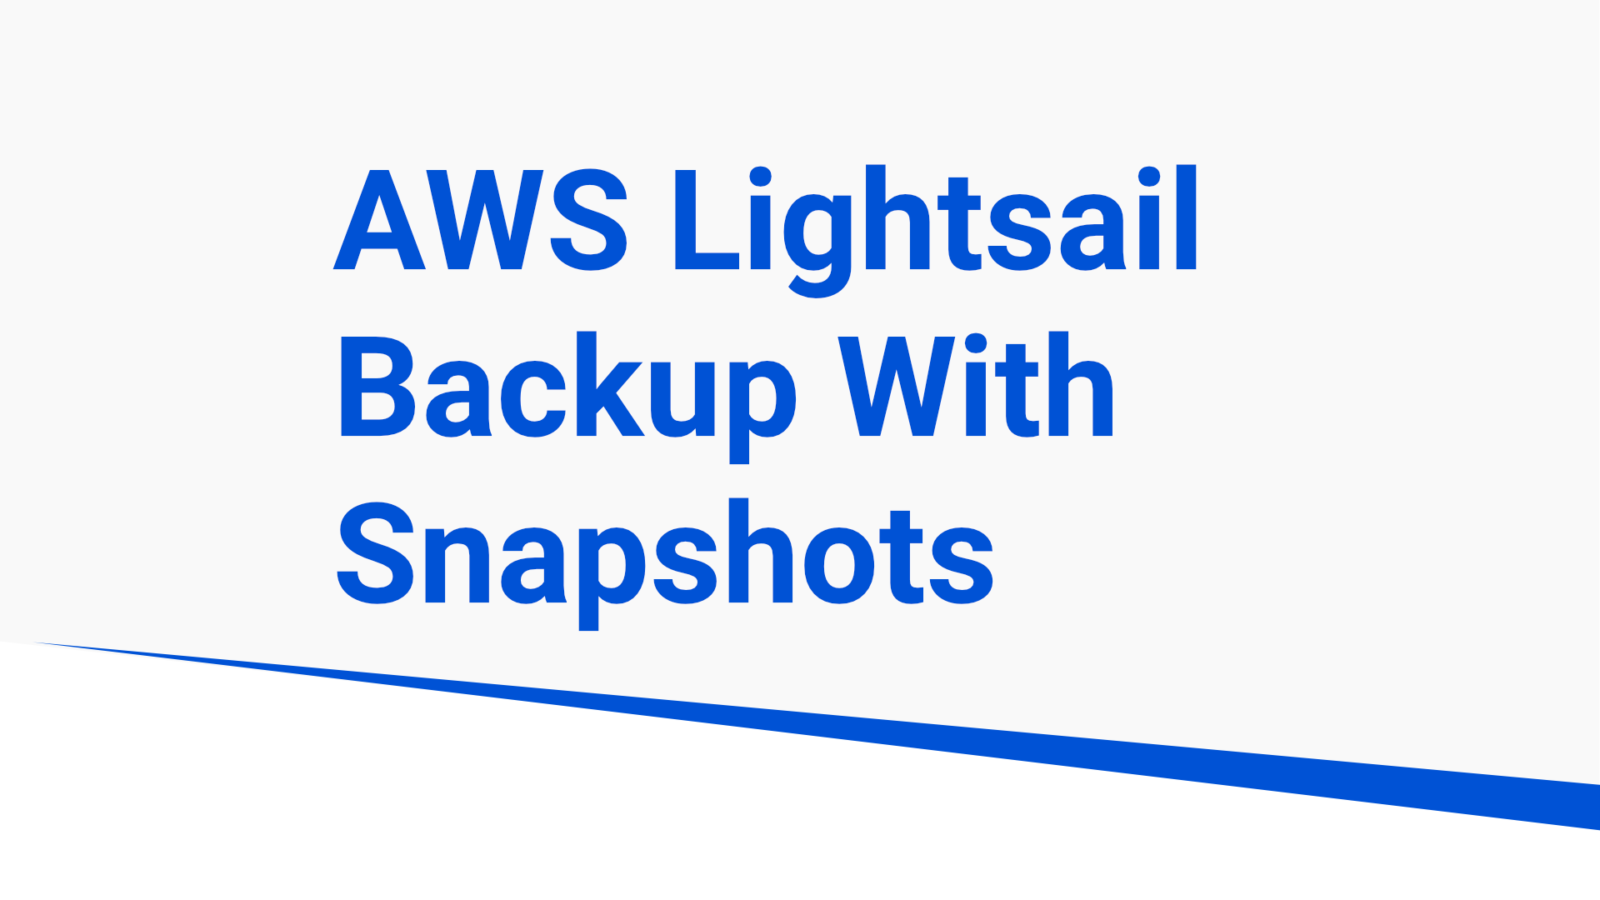 snapshots on aws lightsail